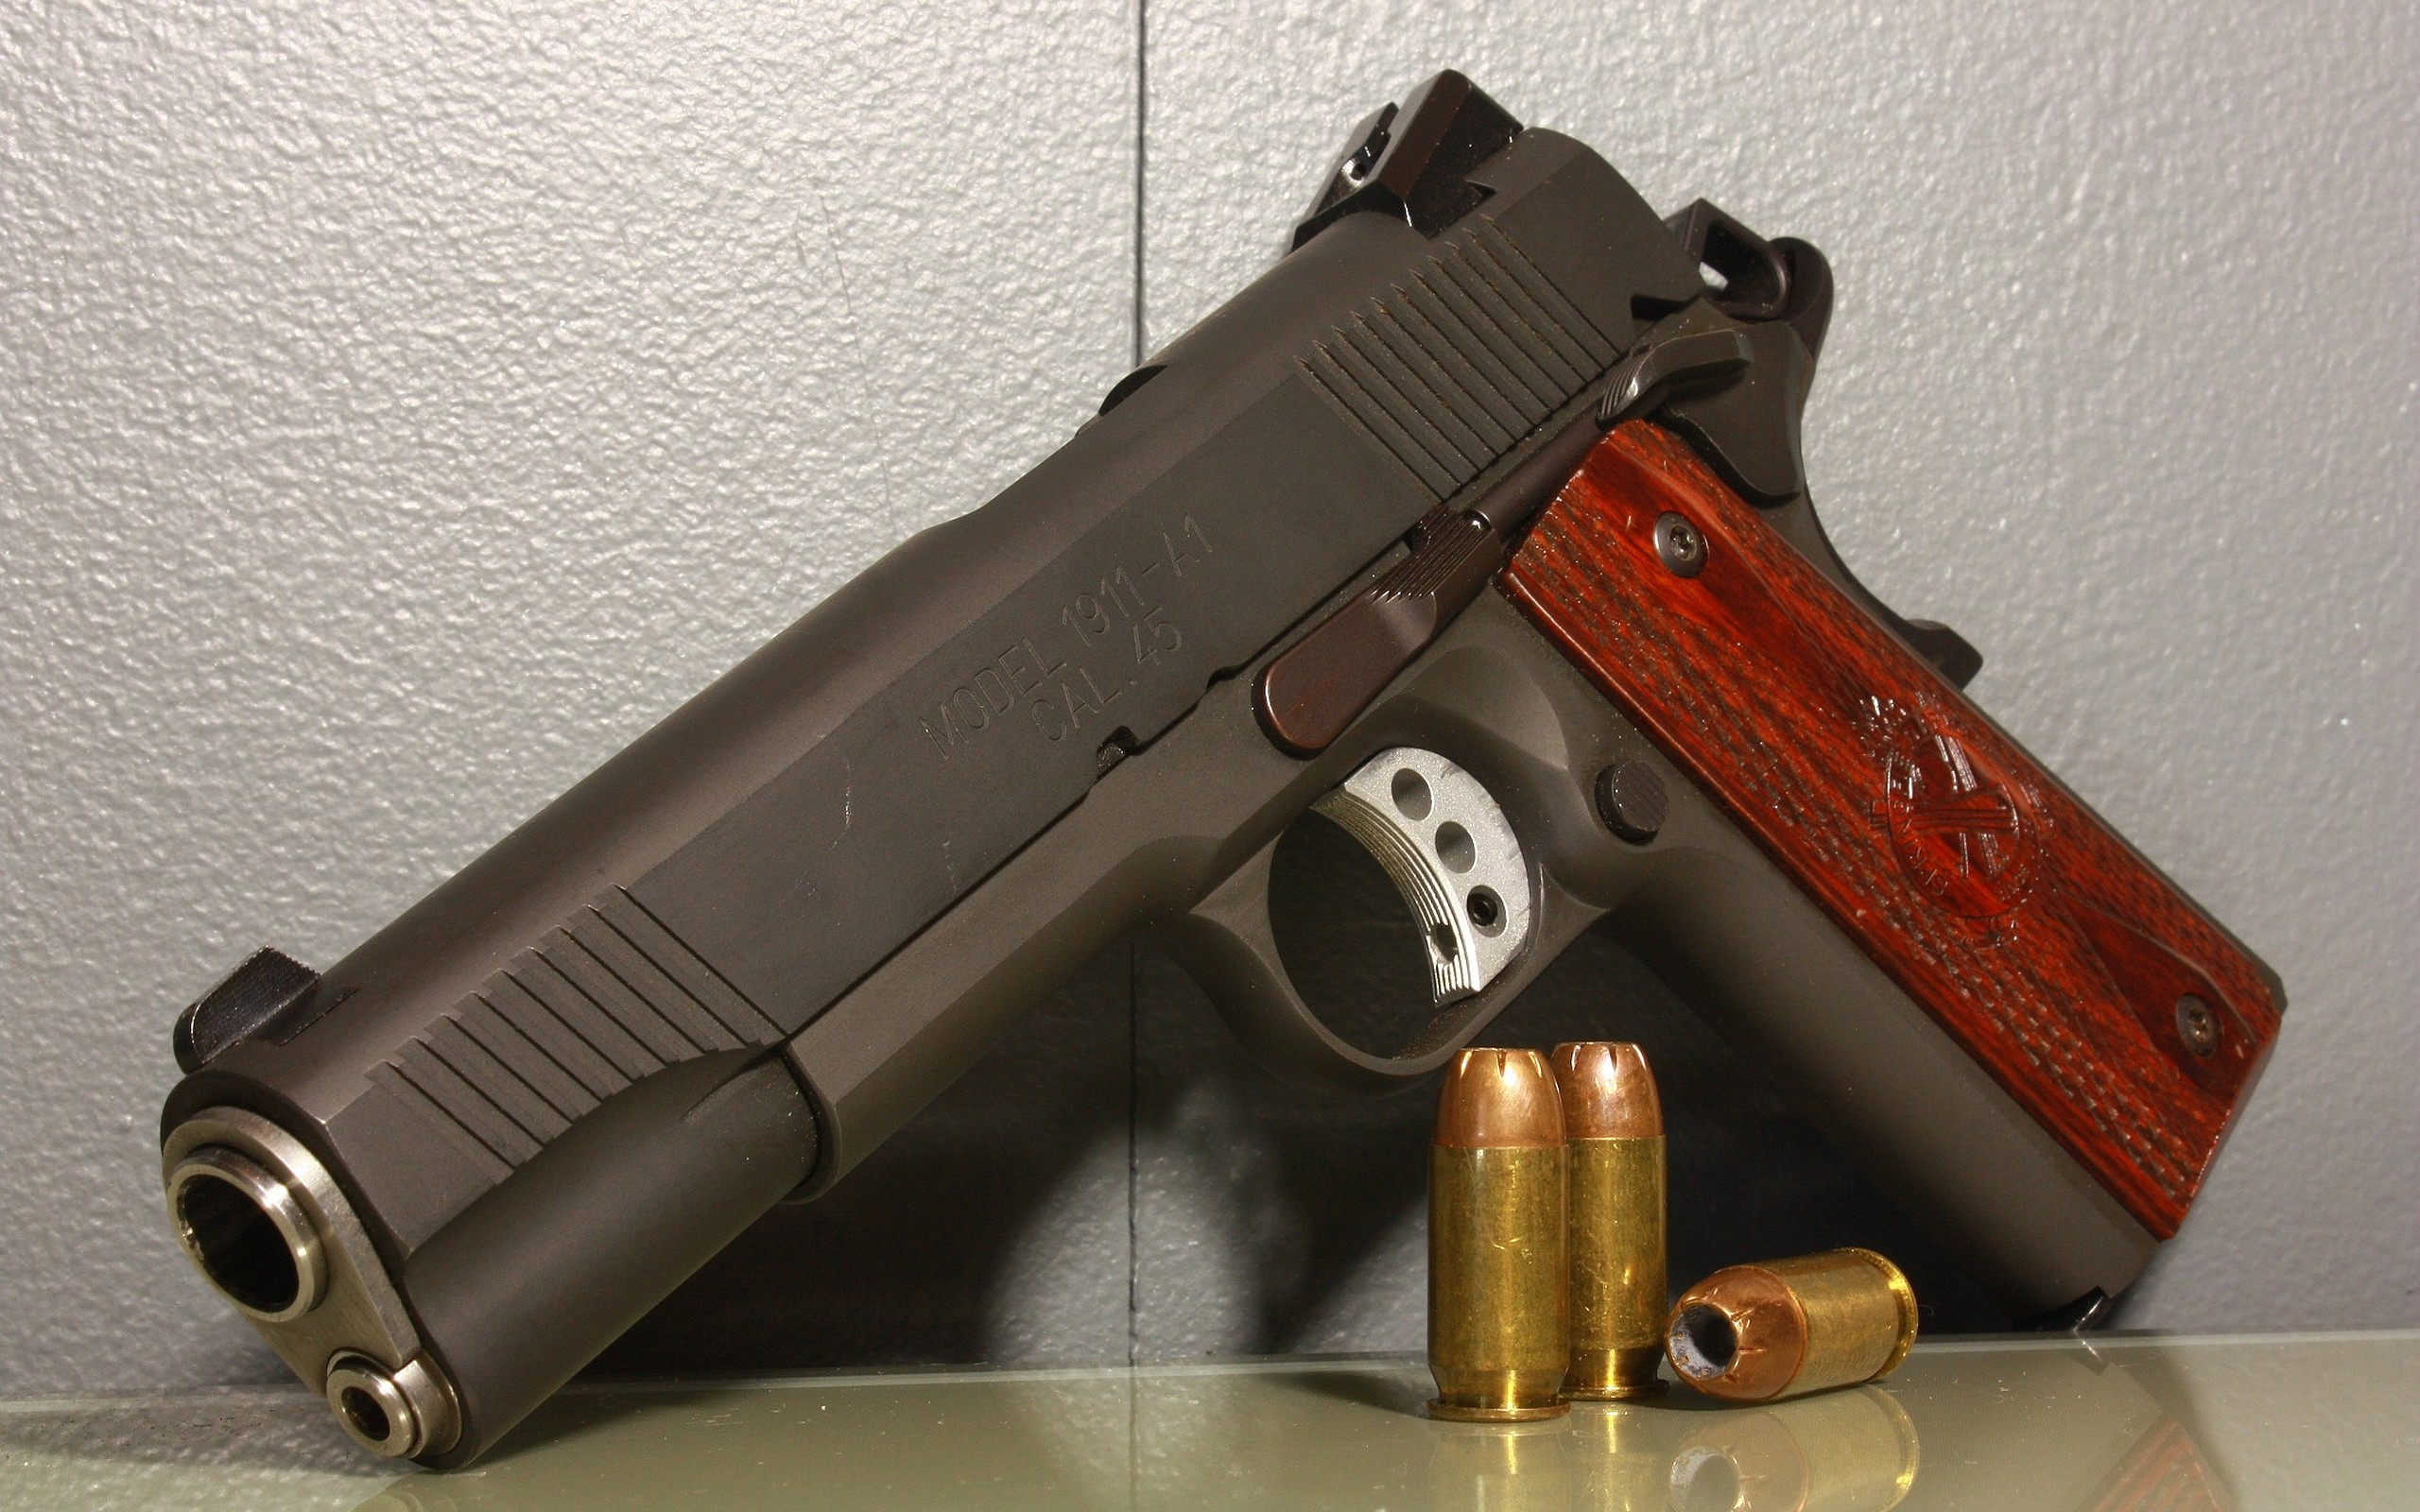 2560x1600 Weapons - Springfield Armory 1911 Pistol Wallpaper